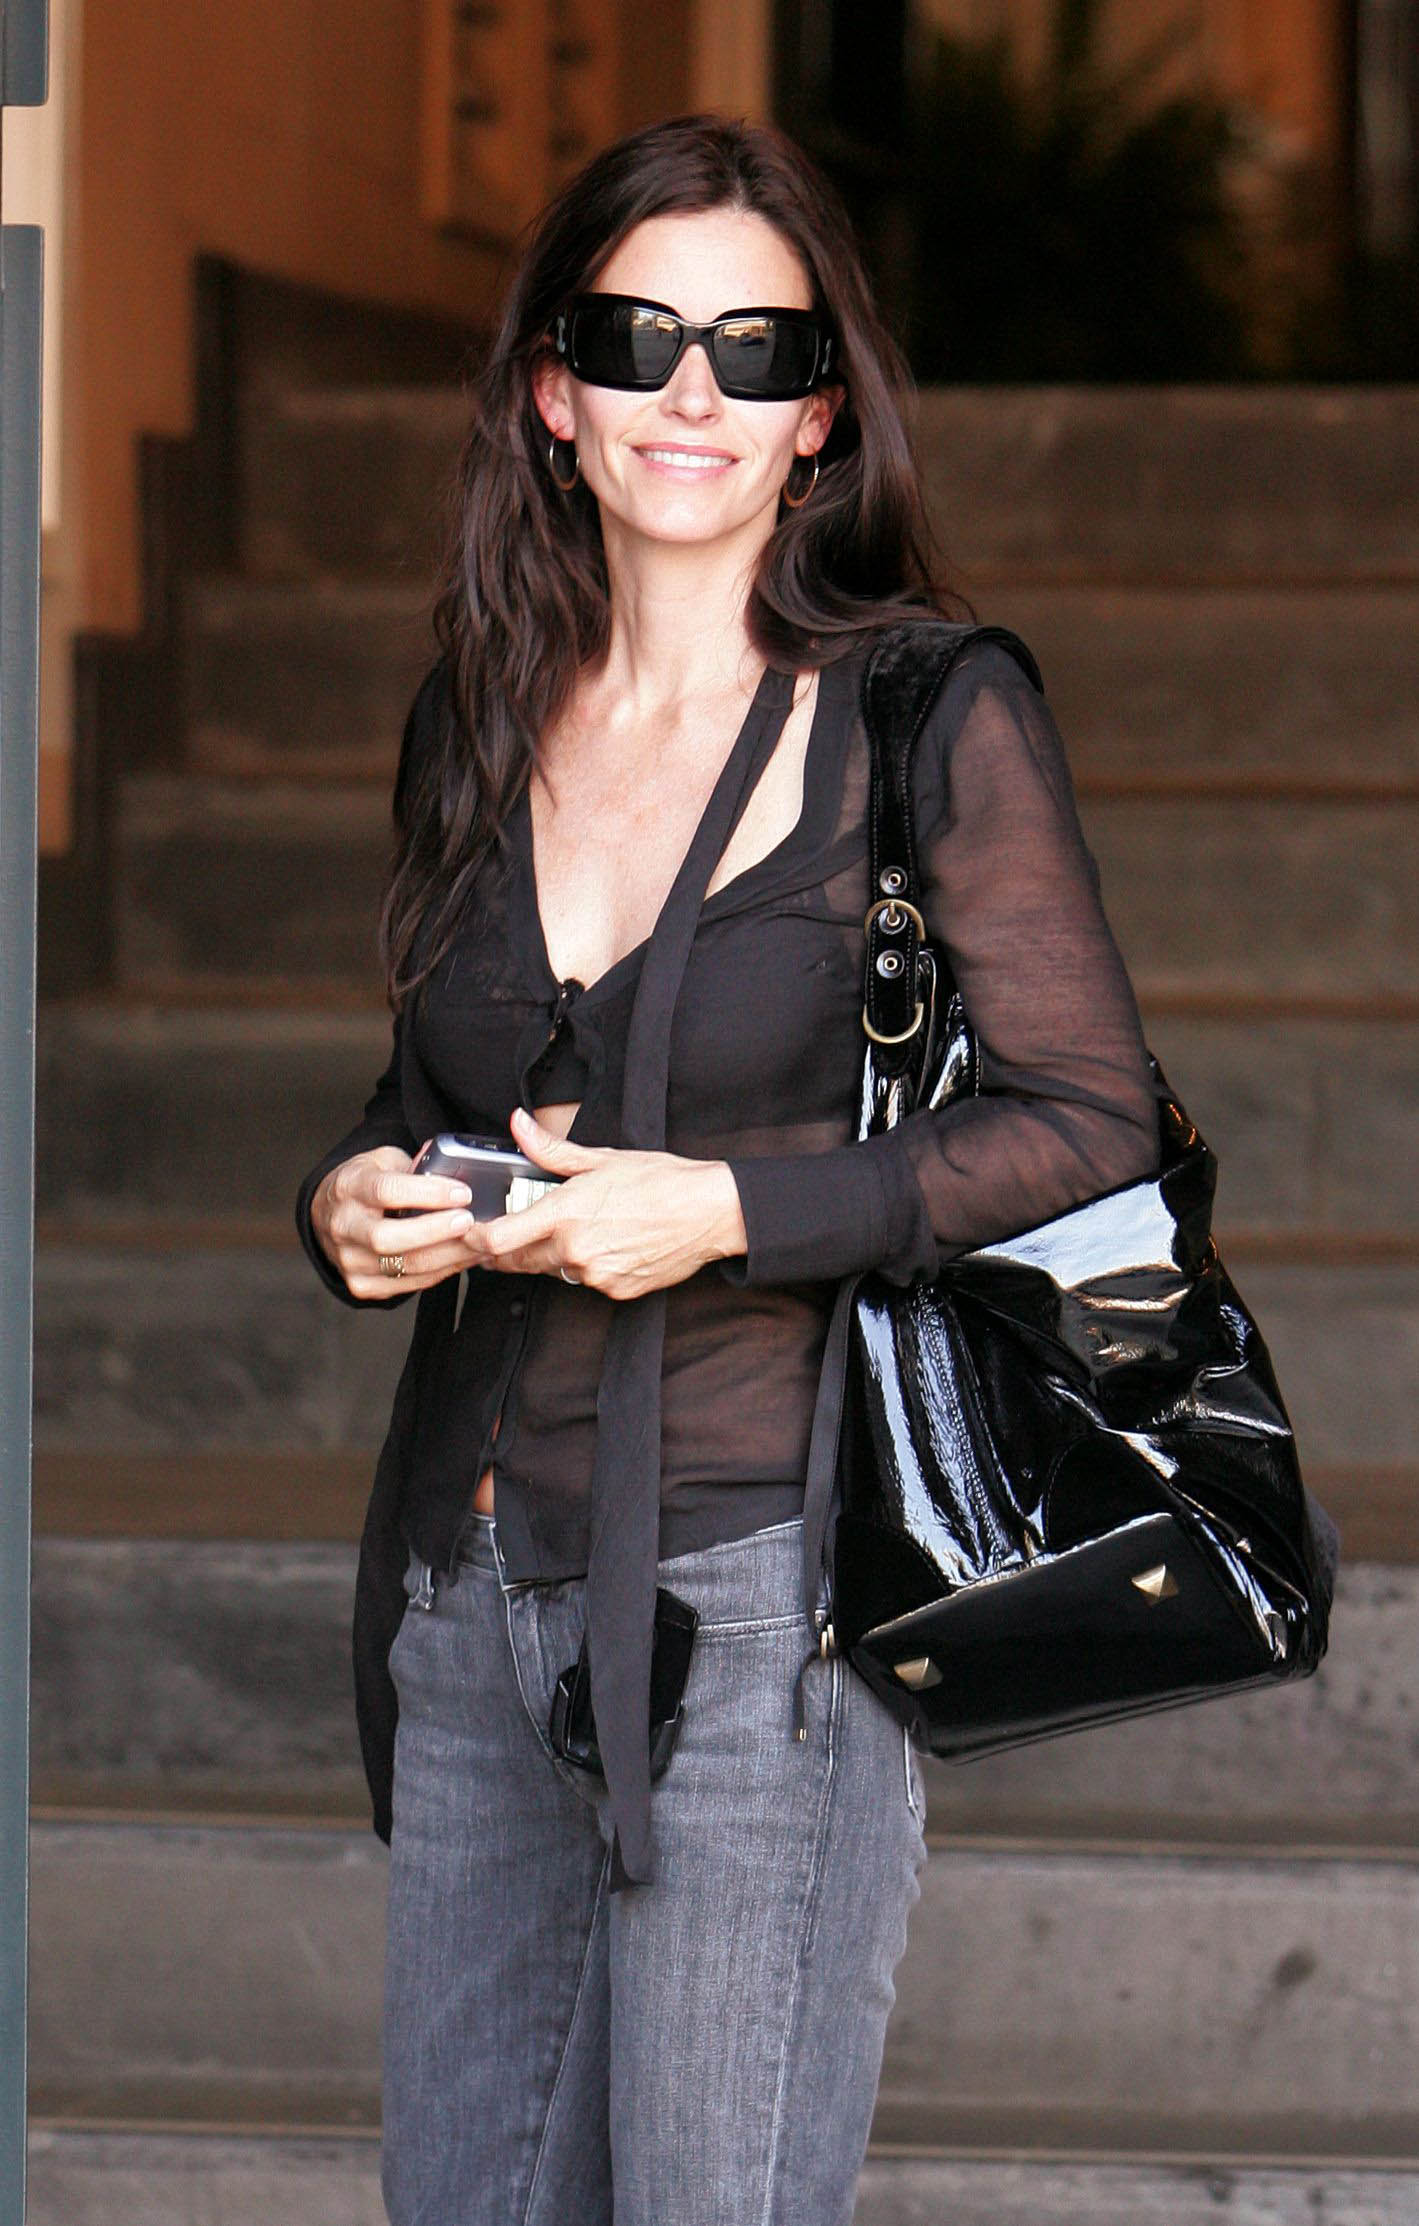 69783_Courteney_Cox_004_122_440lo